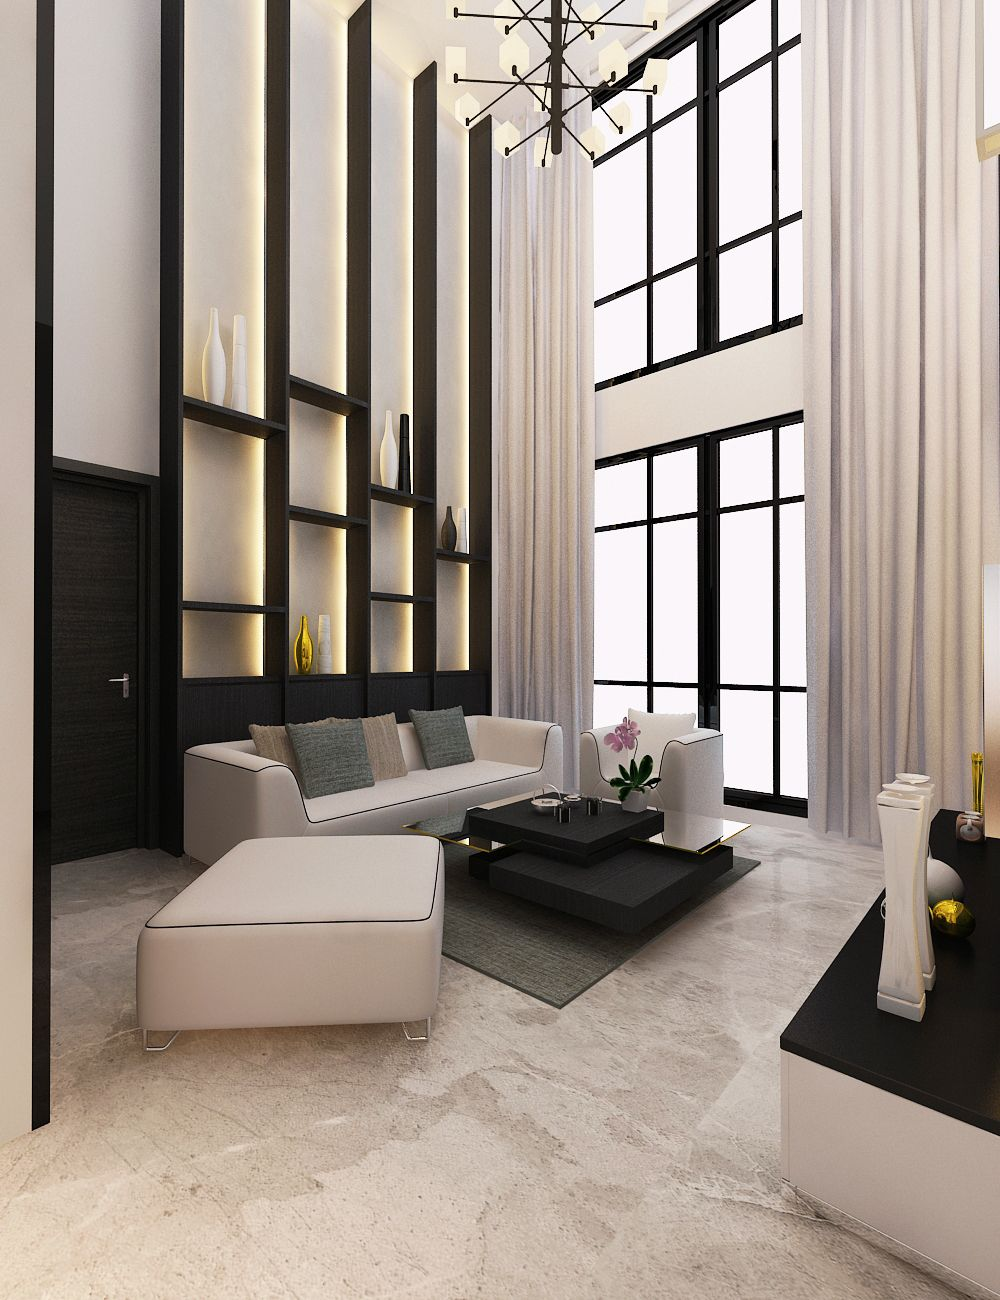 Private House Bsd Indonesia High Ceiling Living Room Wall Decor Living Room Modern Tiny House Interior Design Decorative ceilings living room